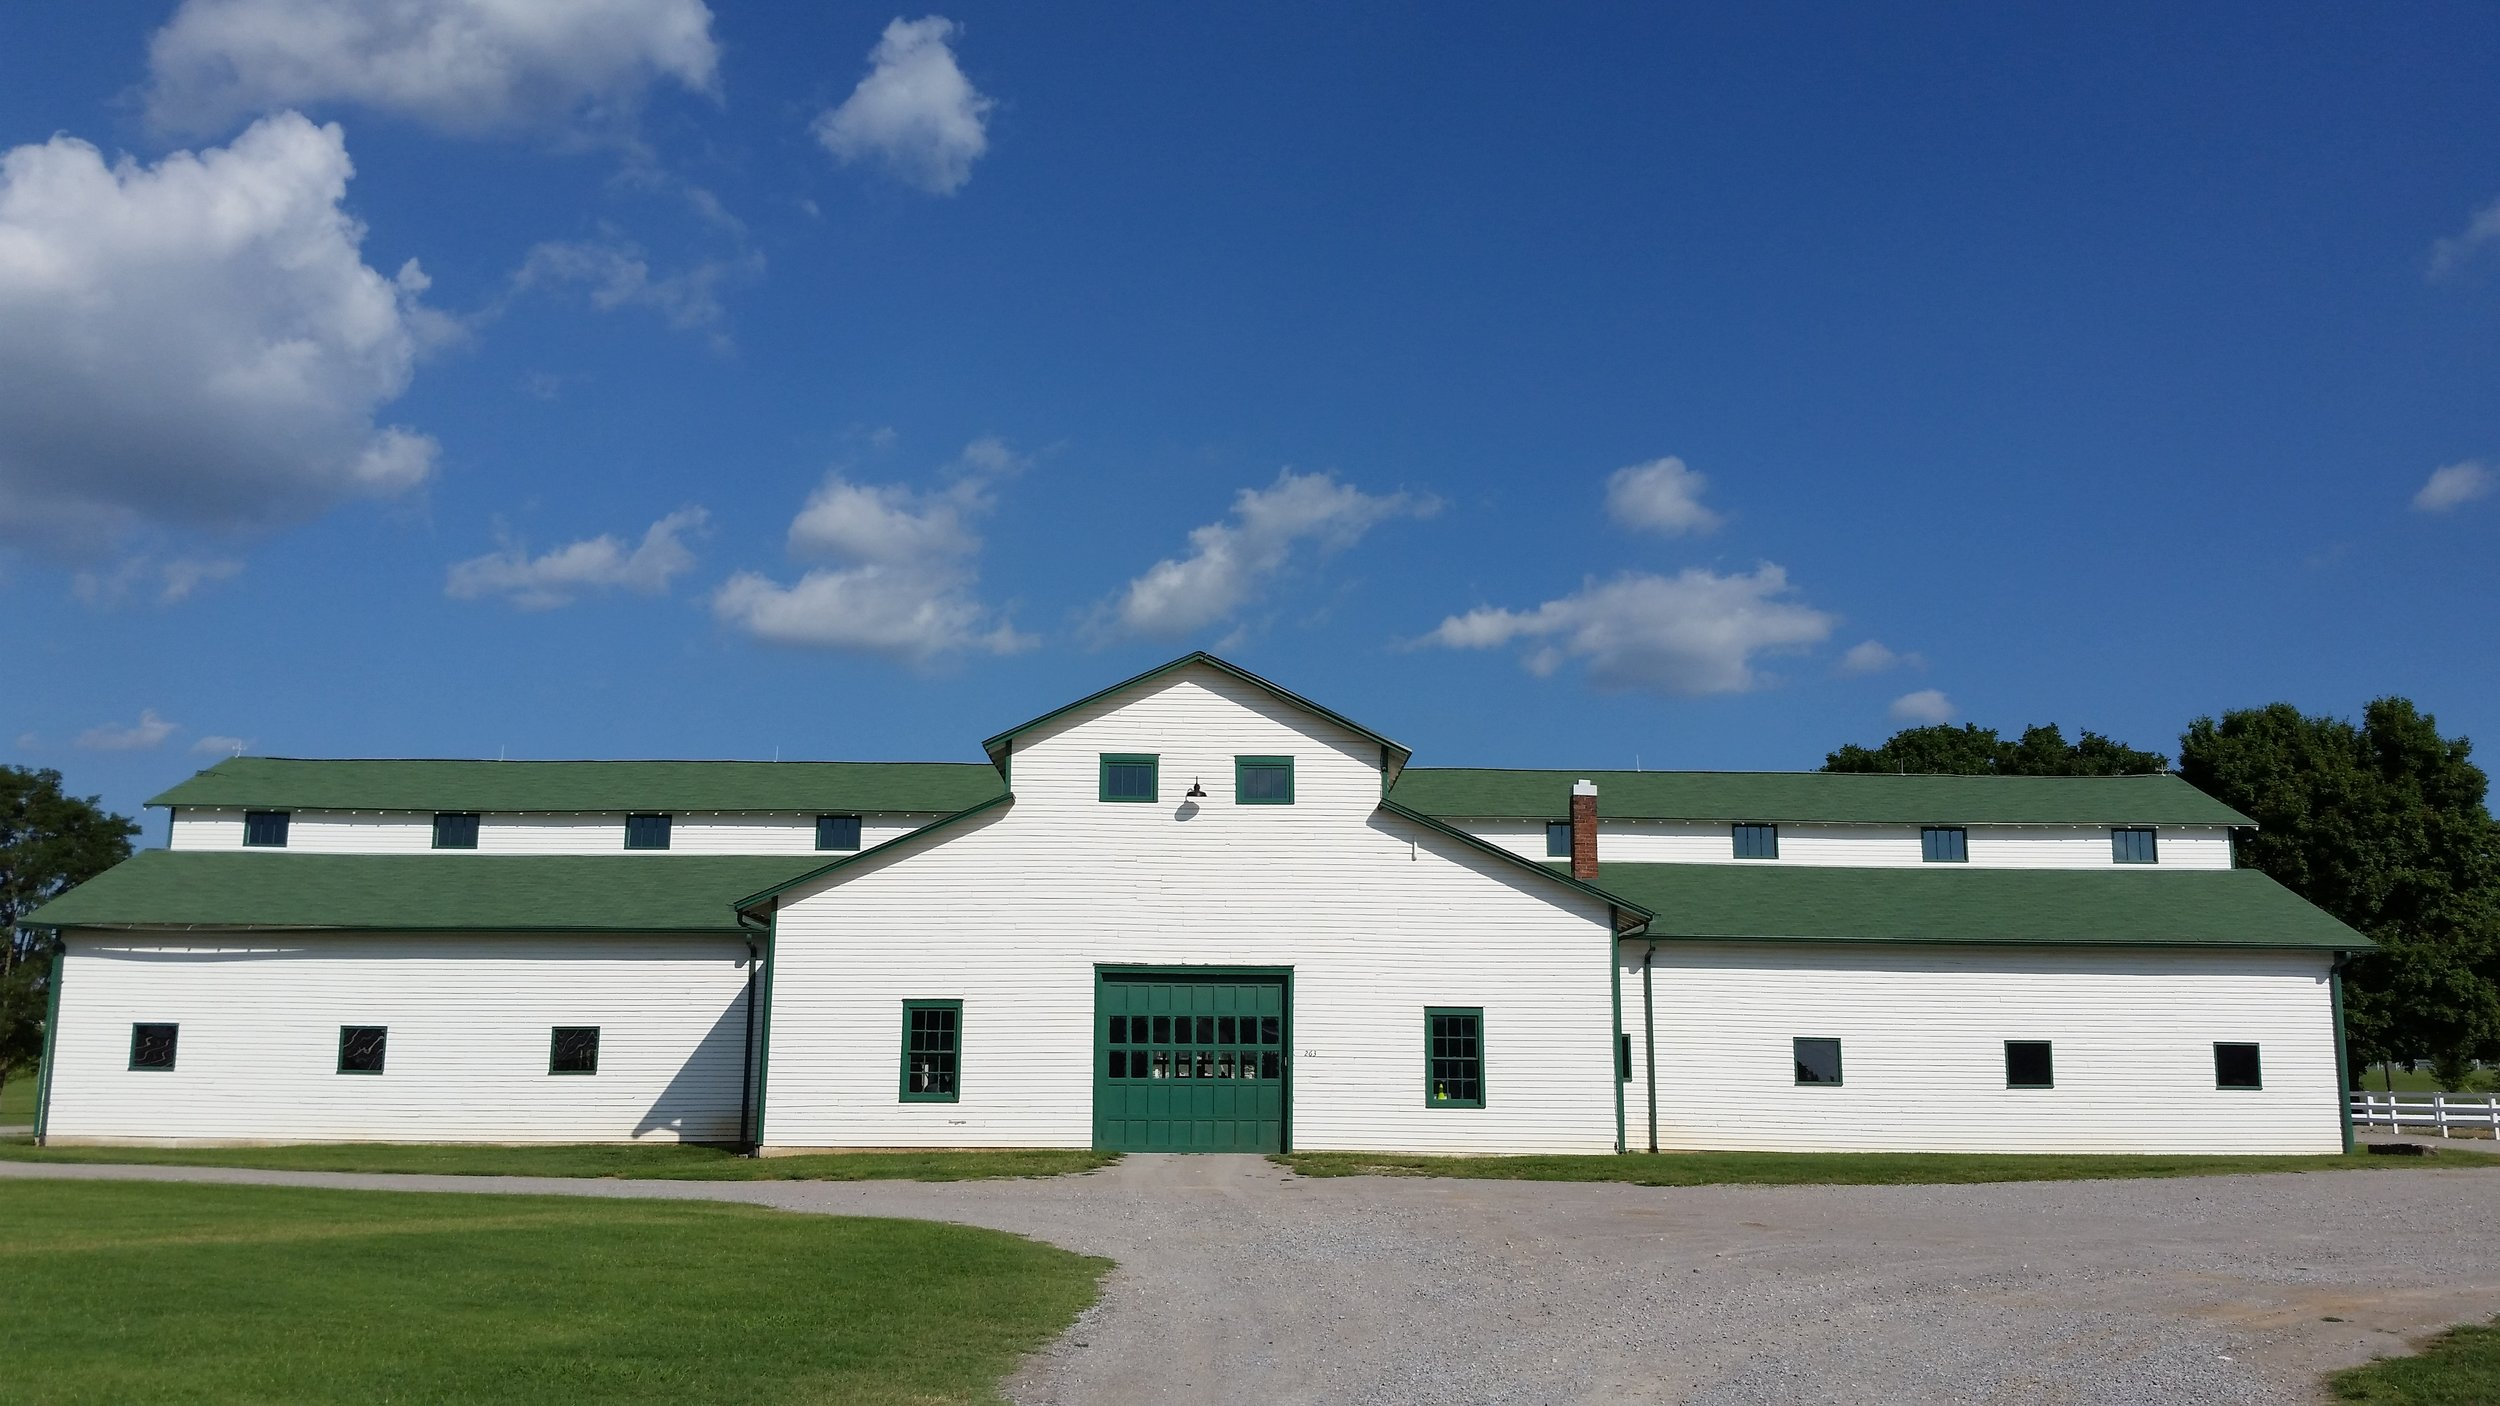 The historic Main Barn at The Park at Harlinsdale Farm.